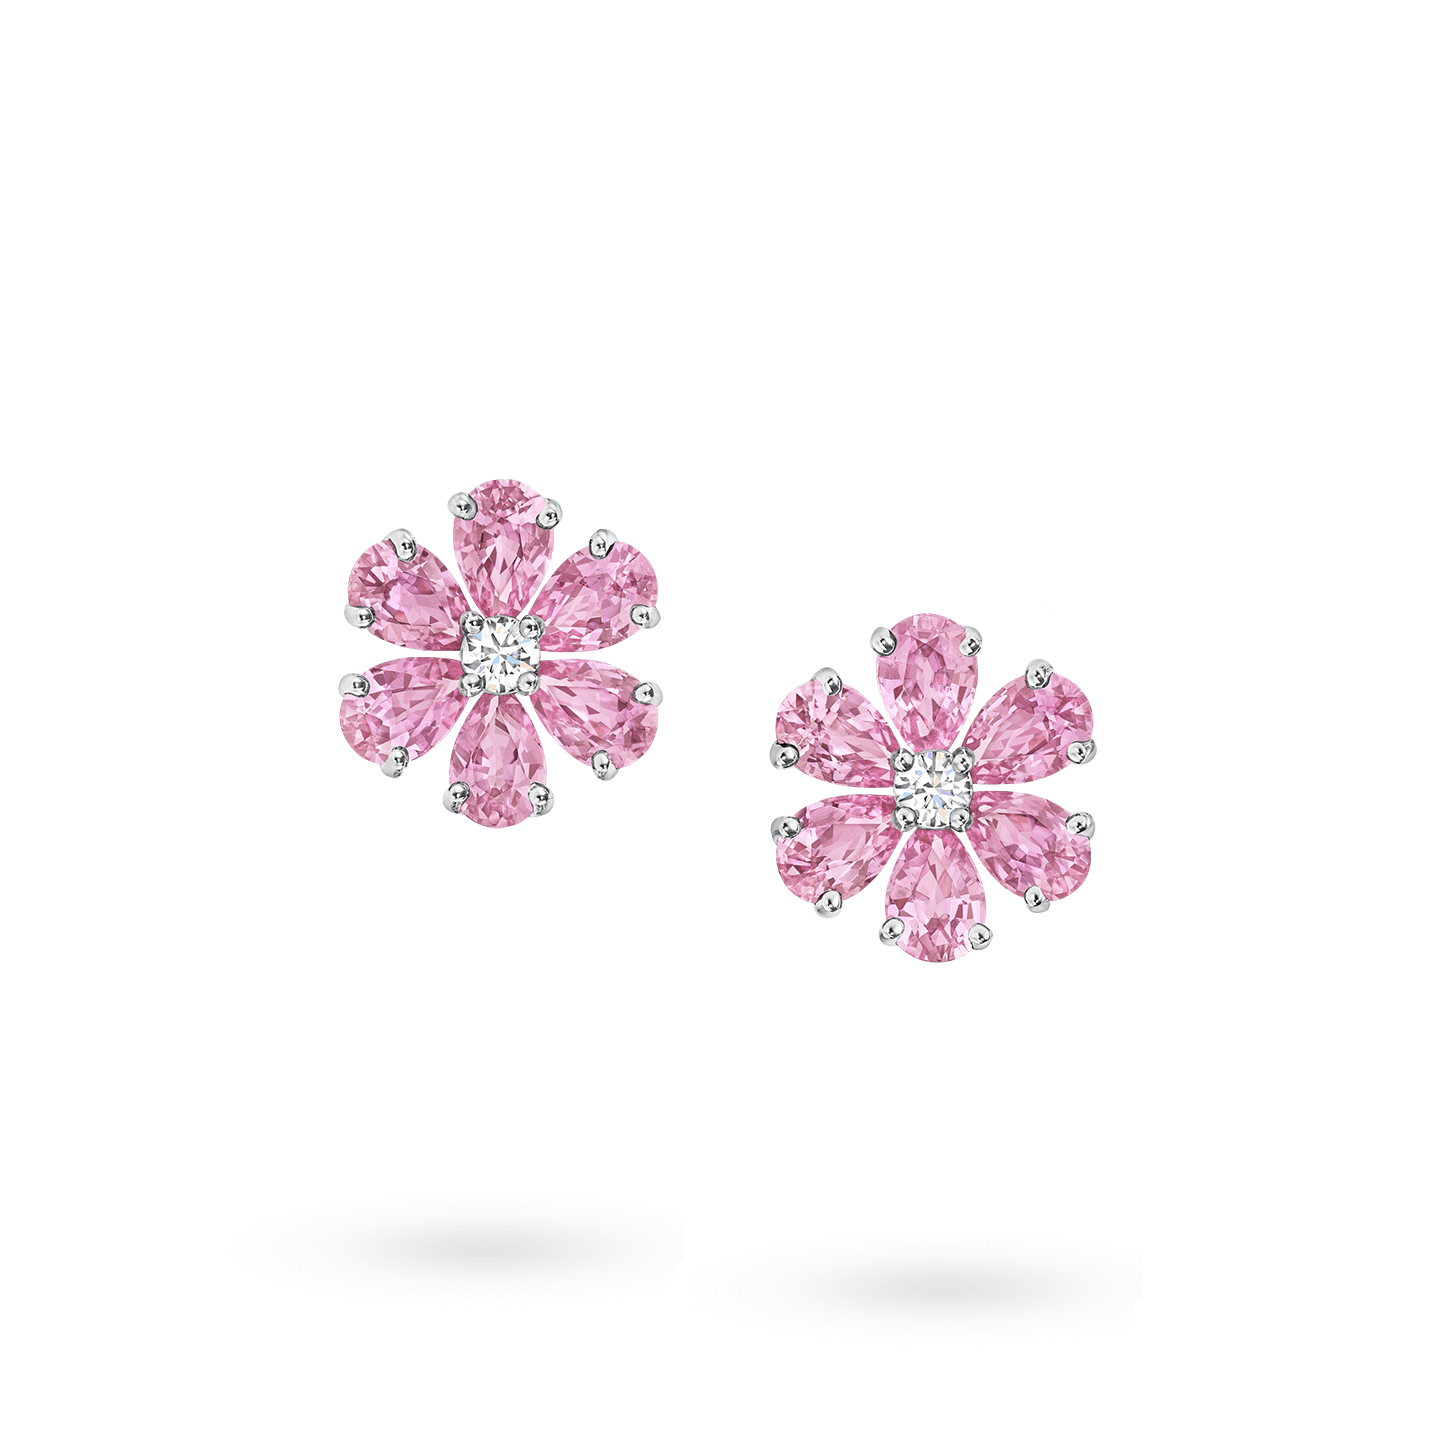 Forget-Me-Not Pink Sapphire and Diamond Earrings, Product Image 1